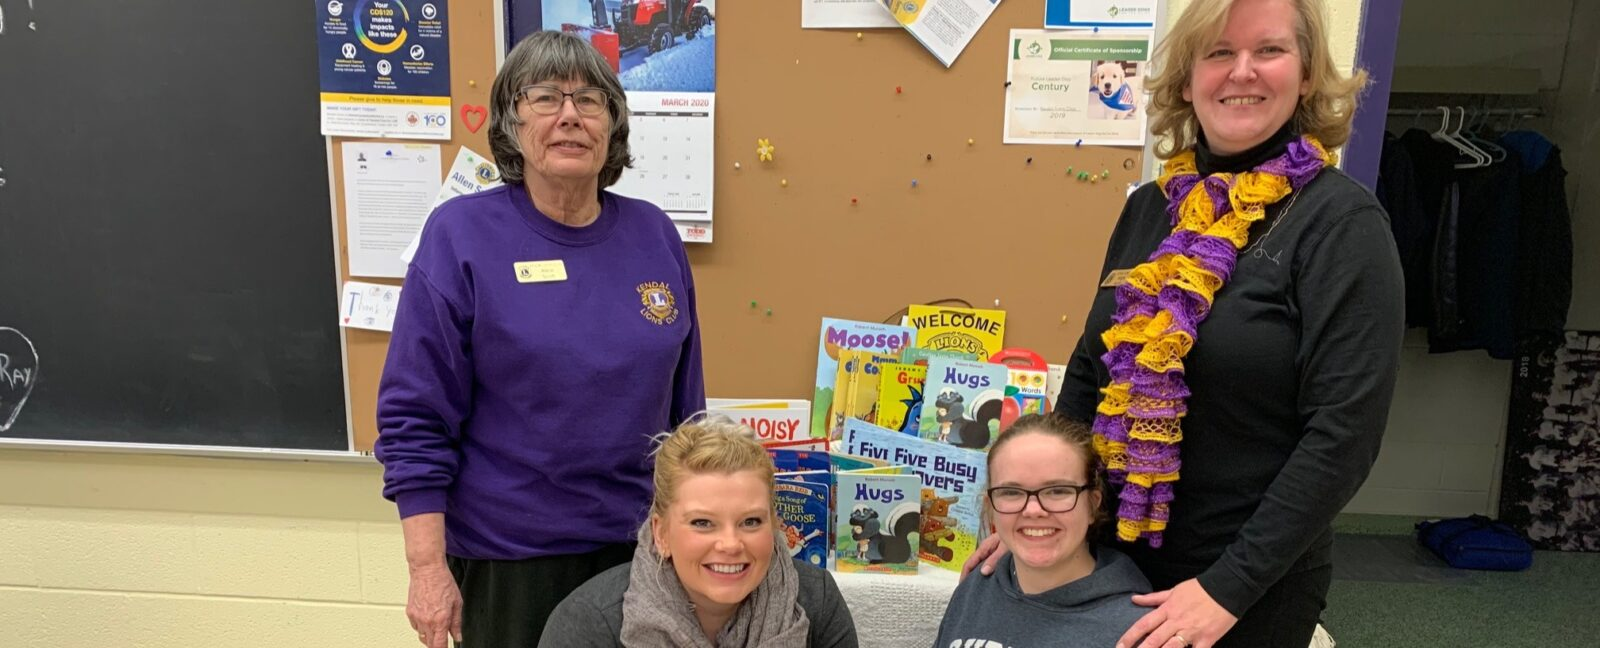 New Books for our Kids – Thank You Kendal Lions Club!